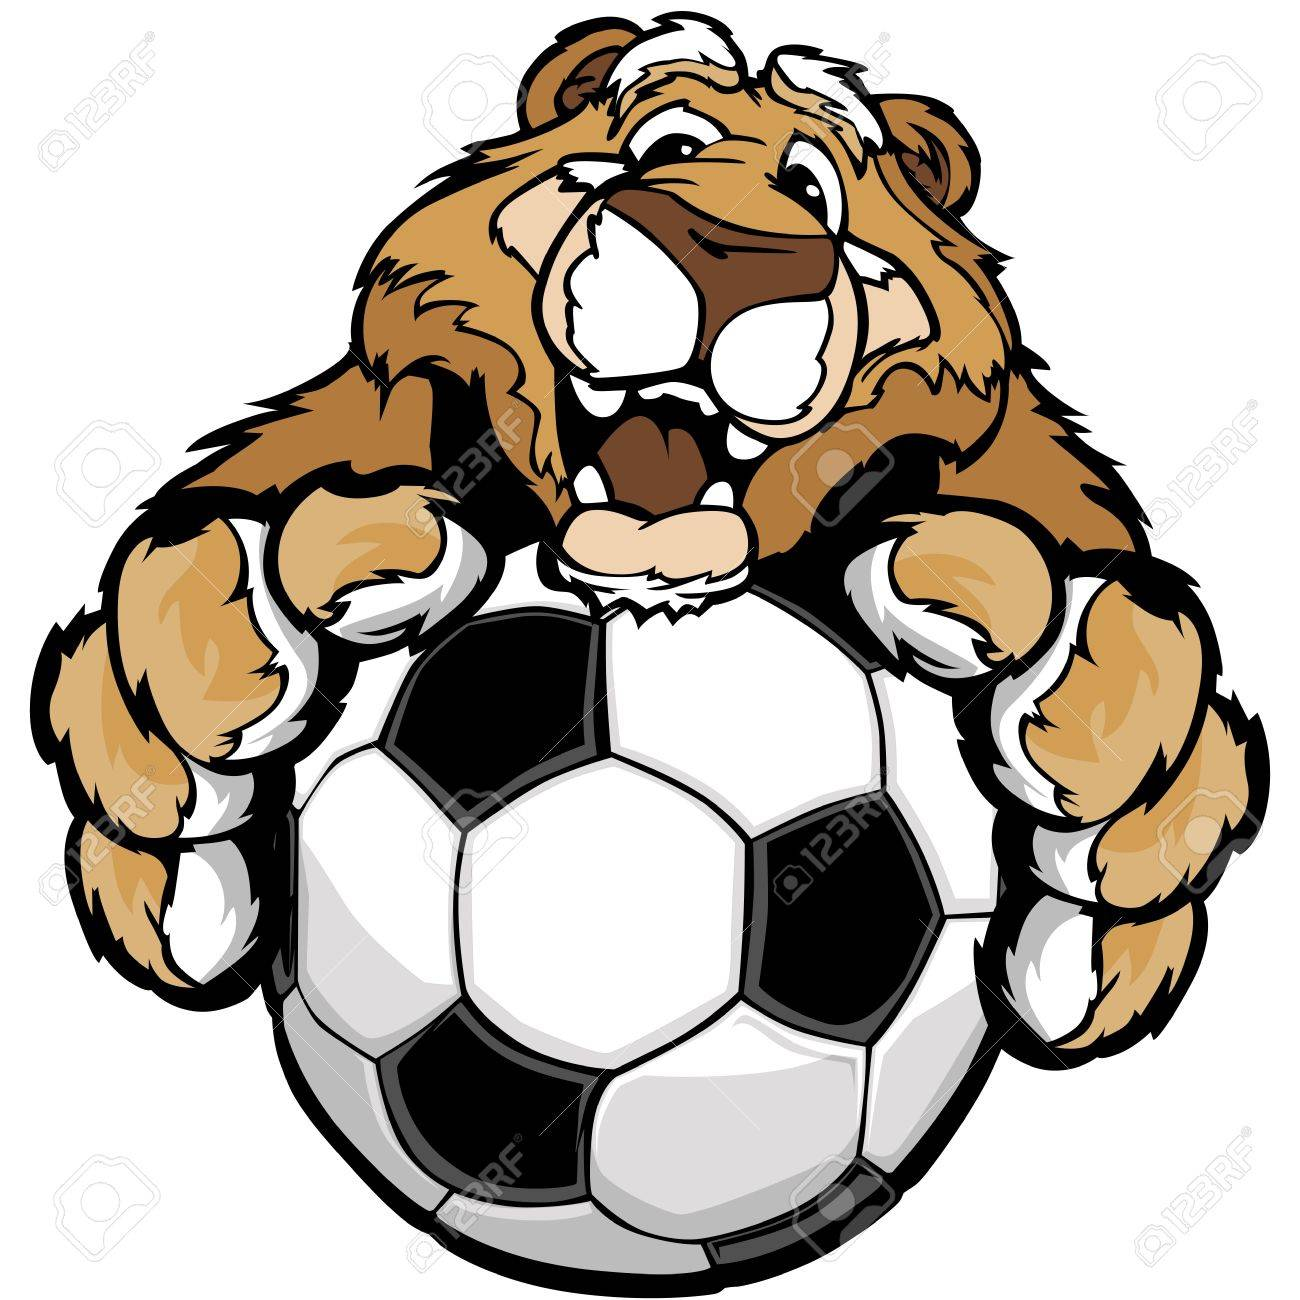 1300x1300 Graphic Mascot Image Of A Friendly Cougar Or Mountain Lion